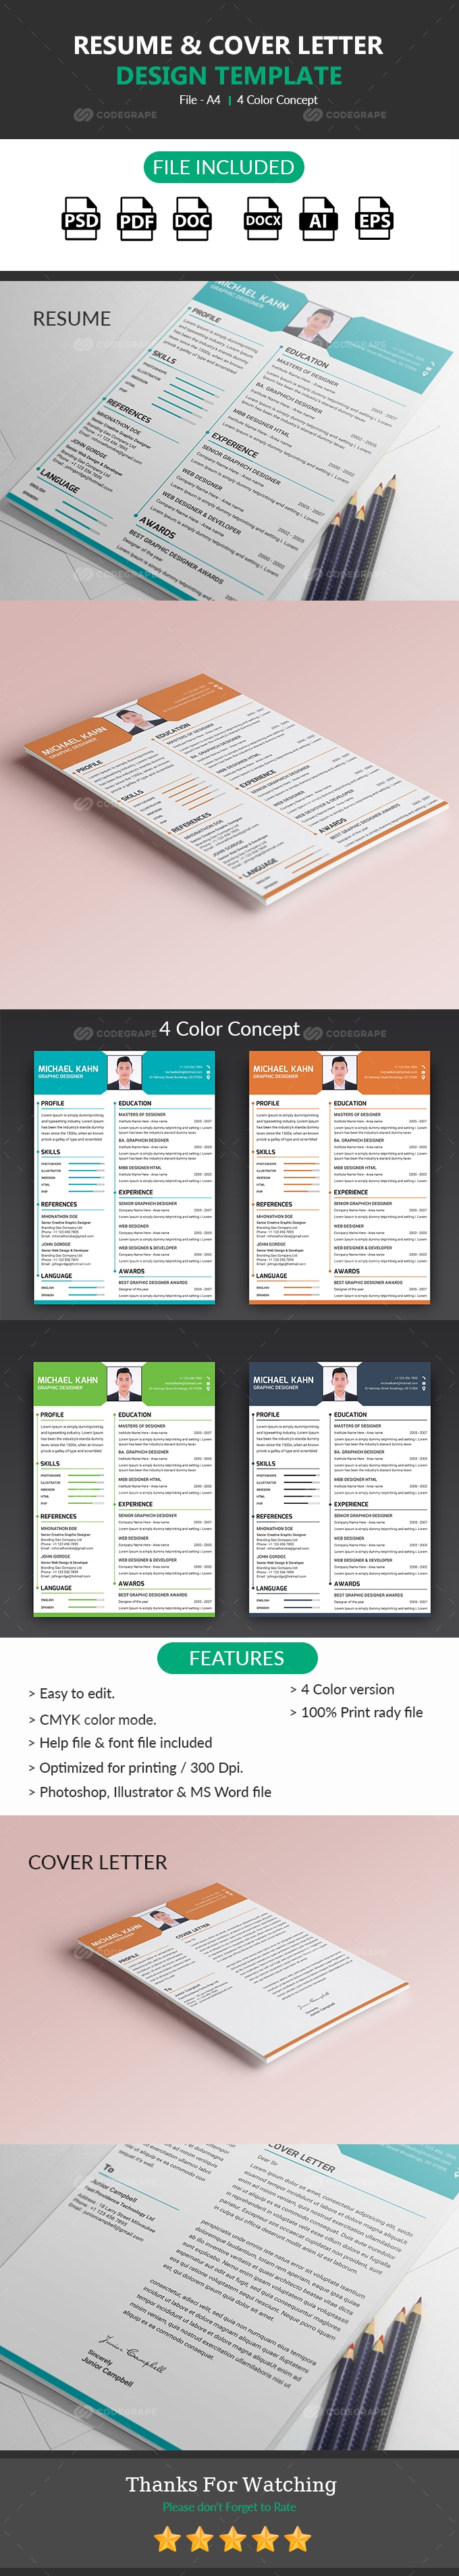 Resume  Cover Letter Design  Print  Codegrape